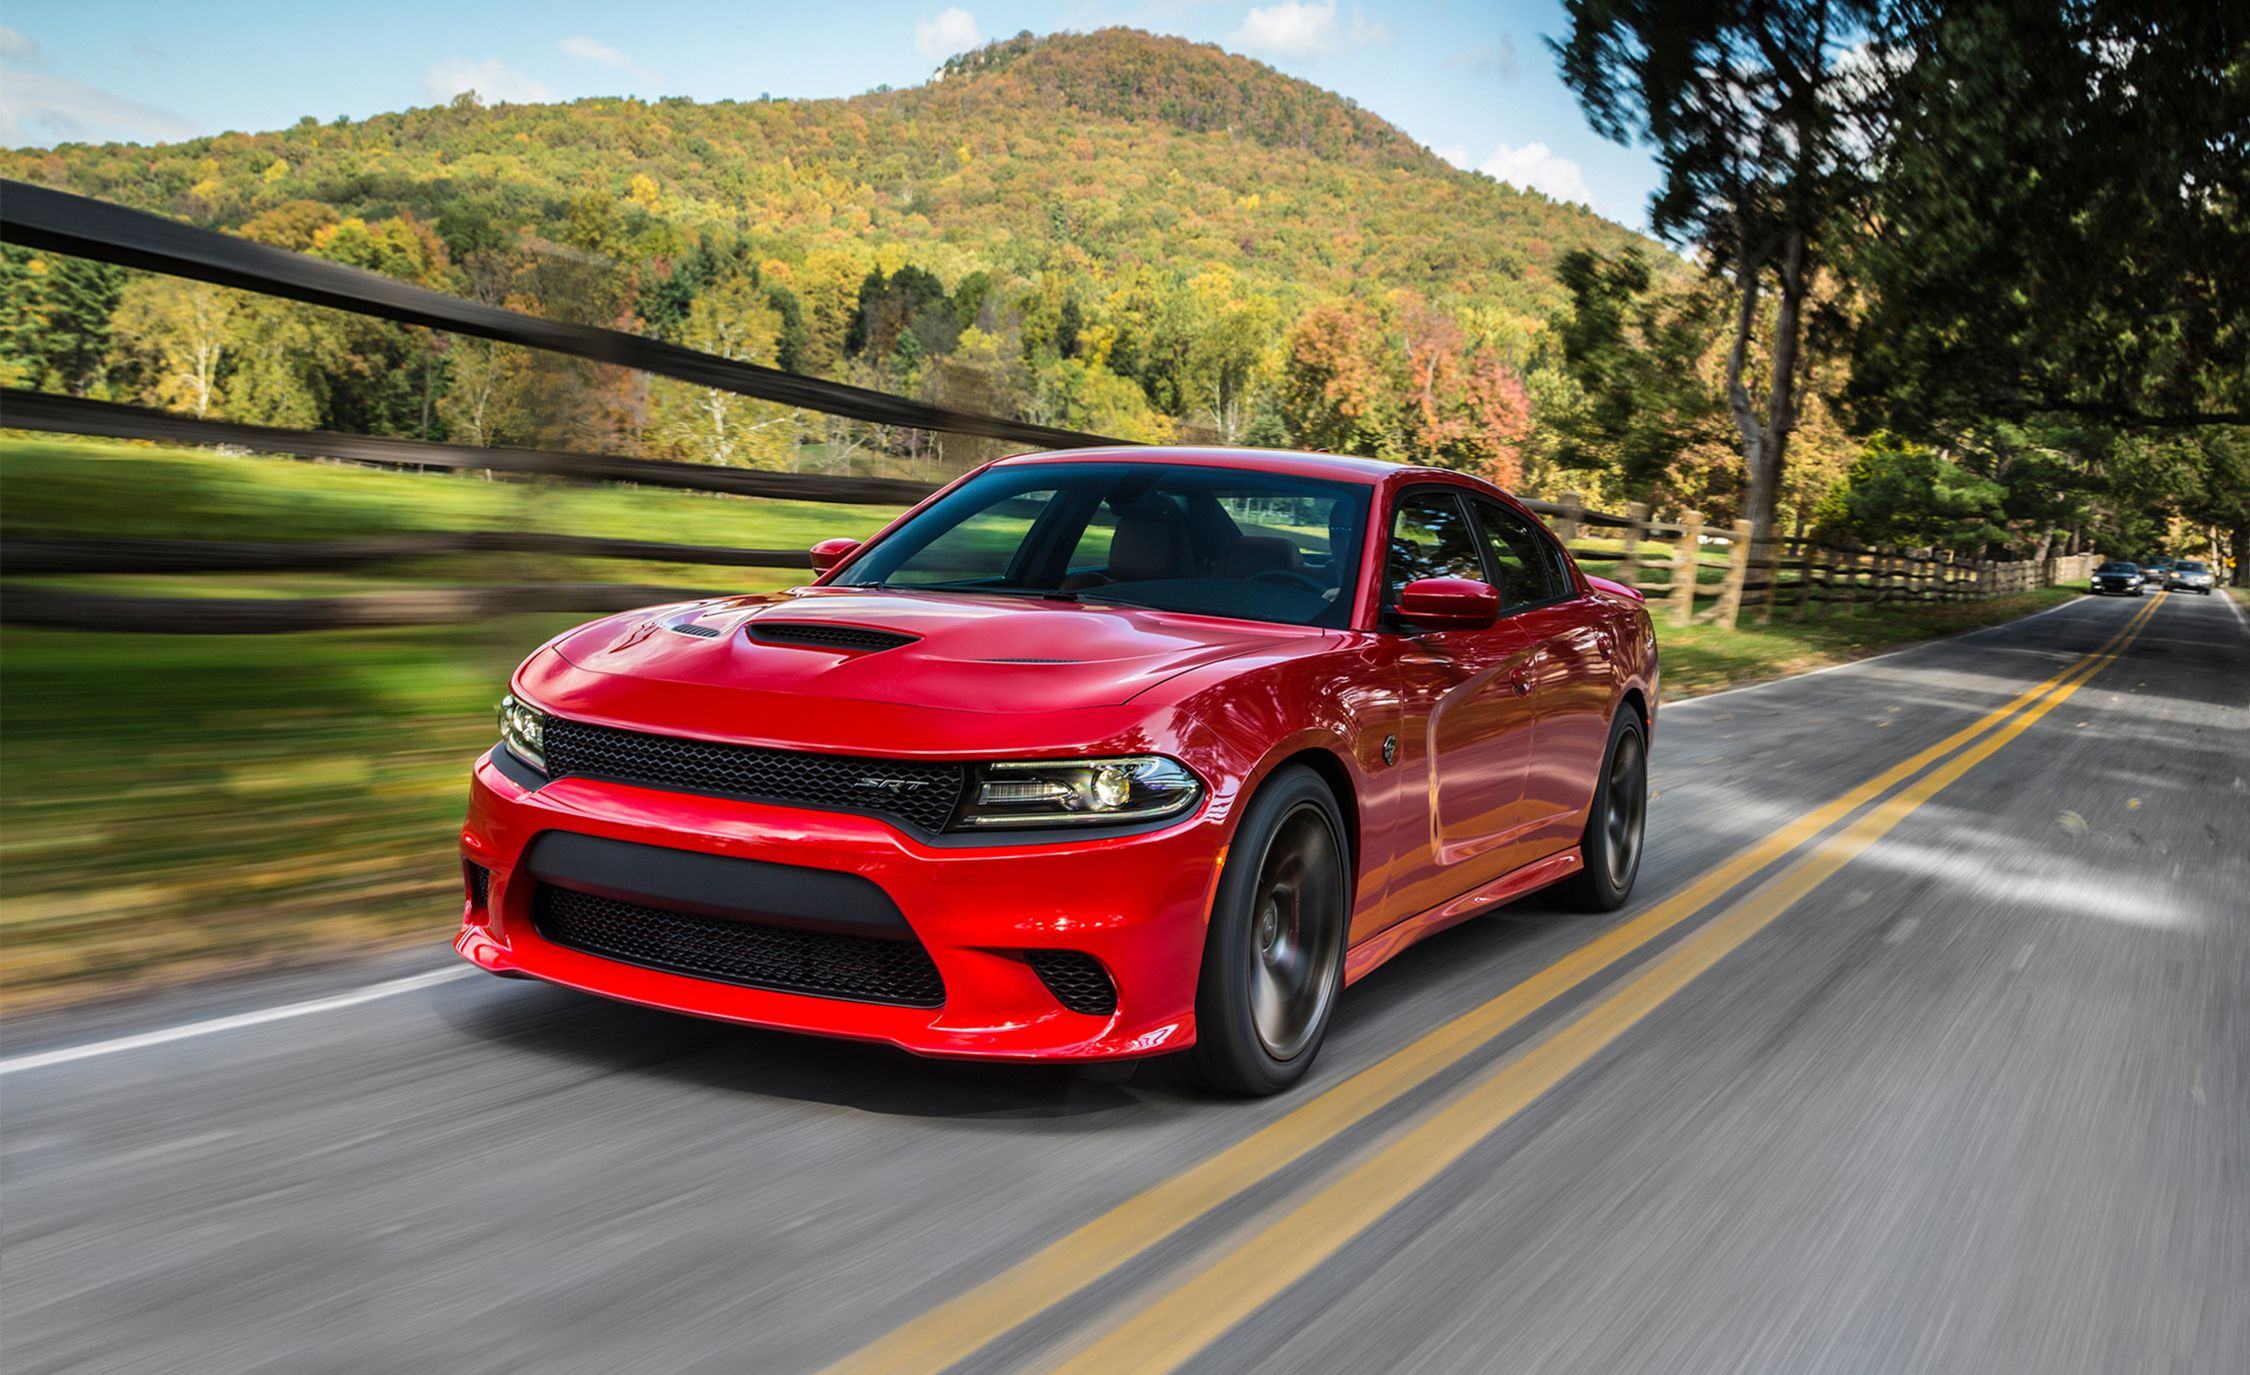 Toyota Build And Price >> 2017 Dodge Charger SRT / SRT Hellcat Pictures | Photo Gallery | Car and Driver